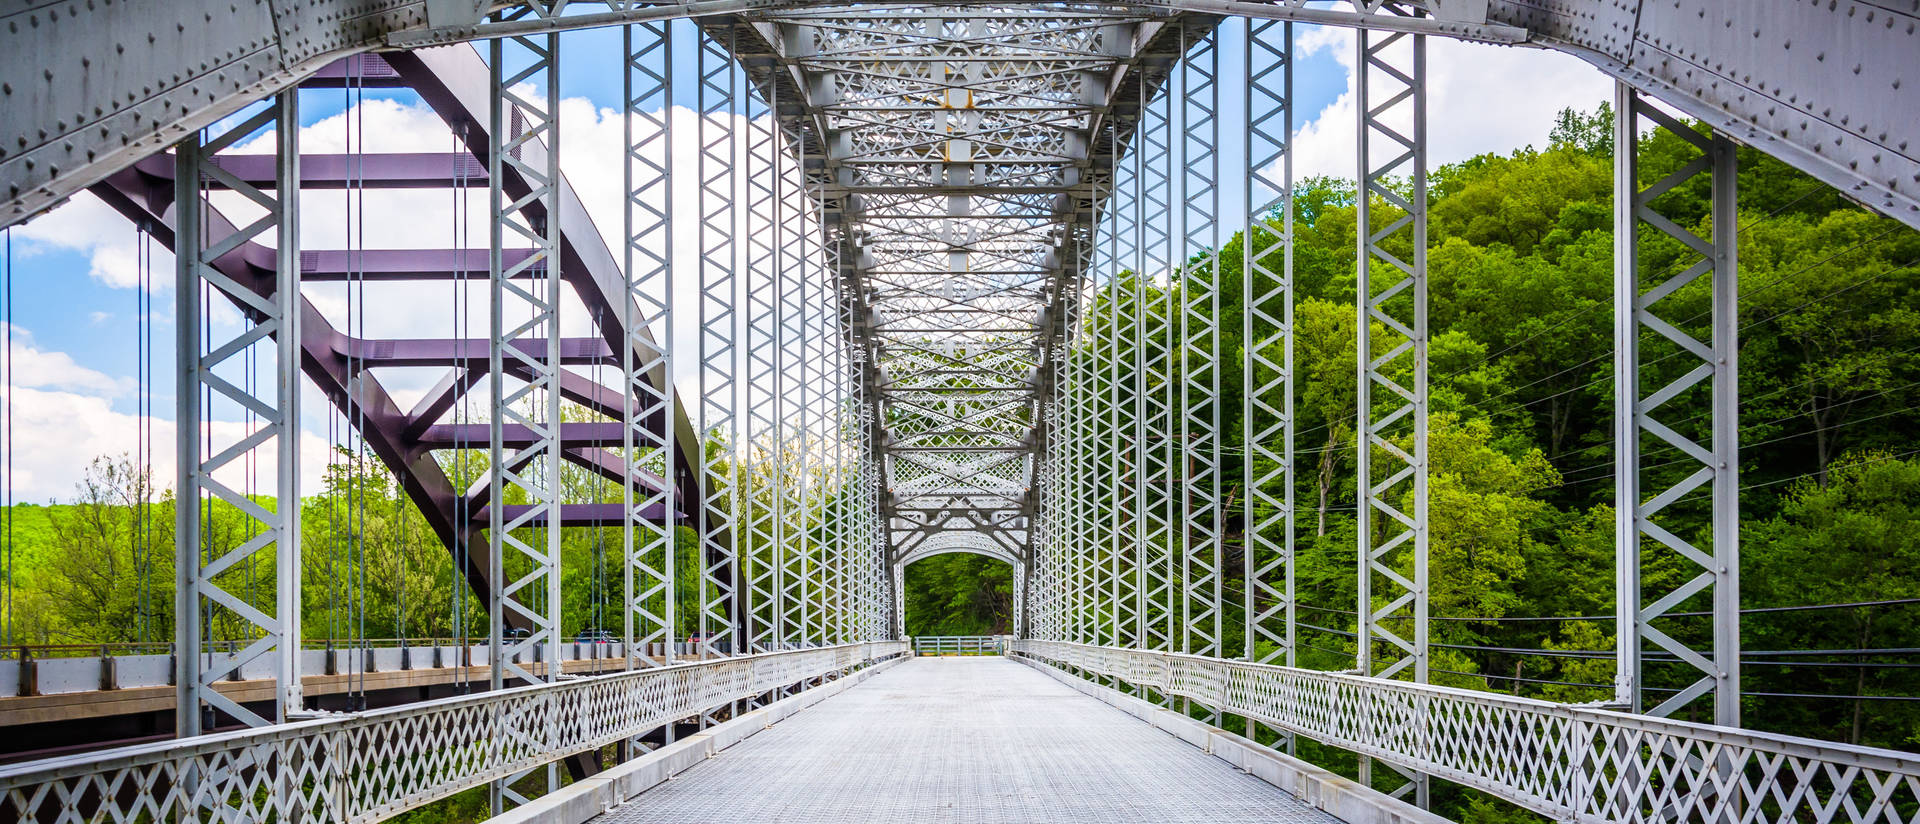 The Old Paper Mill Road Bridge over Loch Raven Reservoir in Baltimore, Maryland